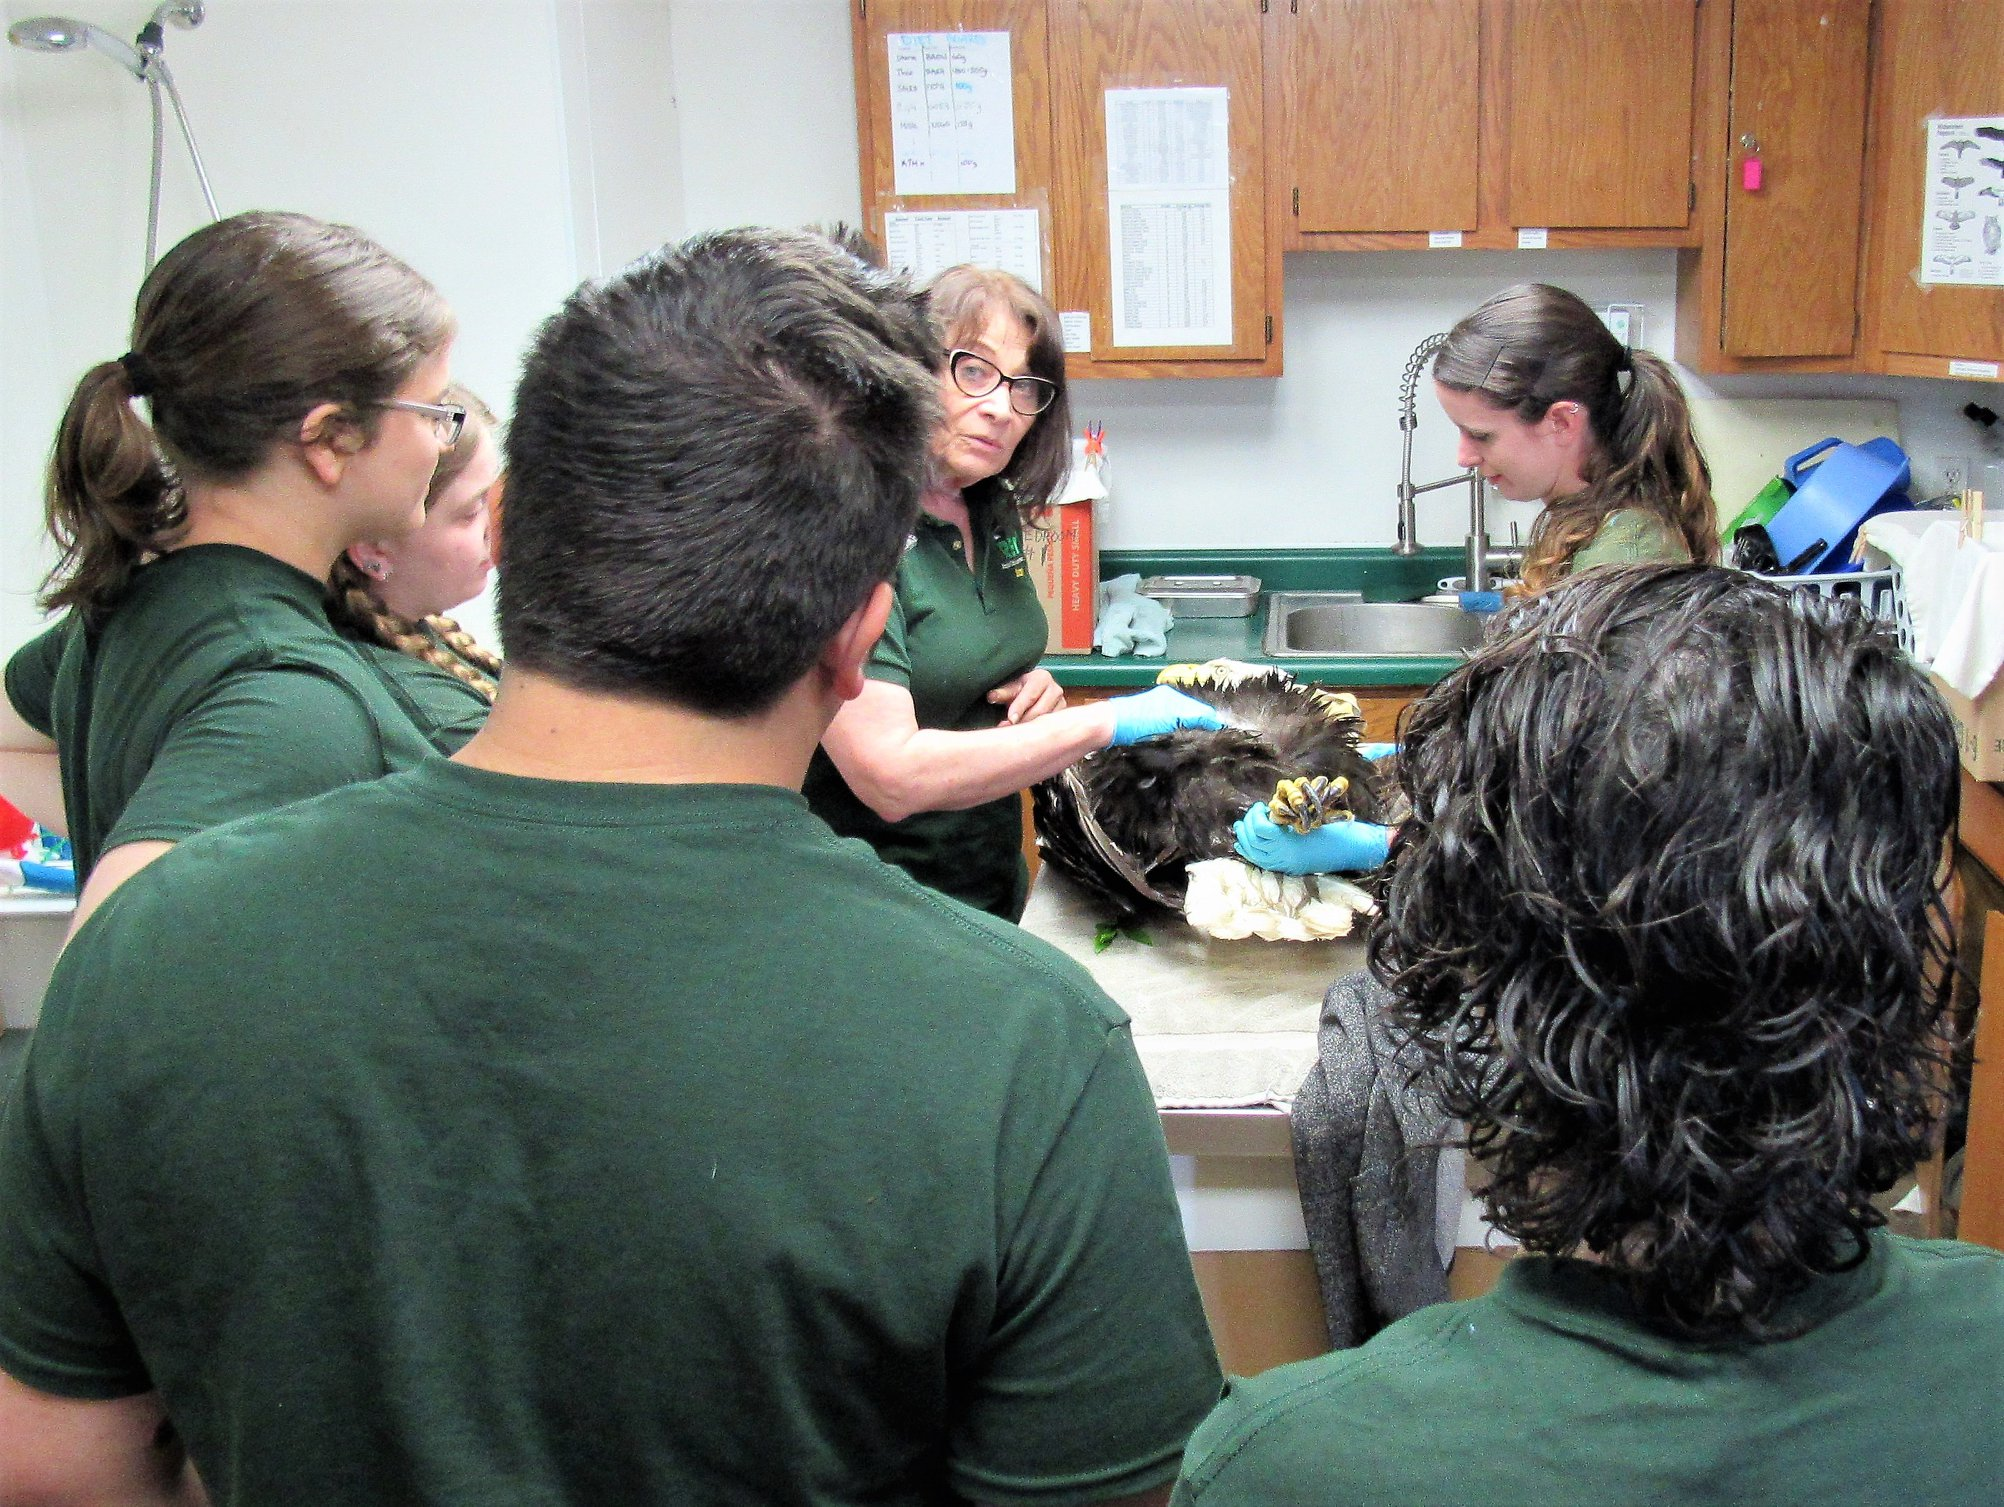 Bald eagle admitted, Interns observe